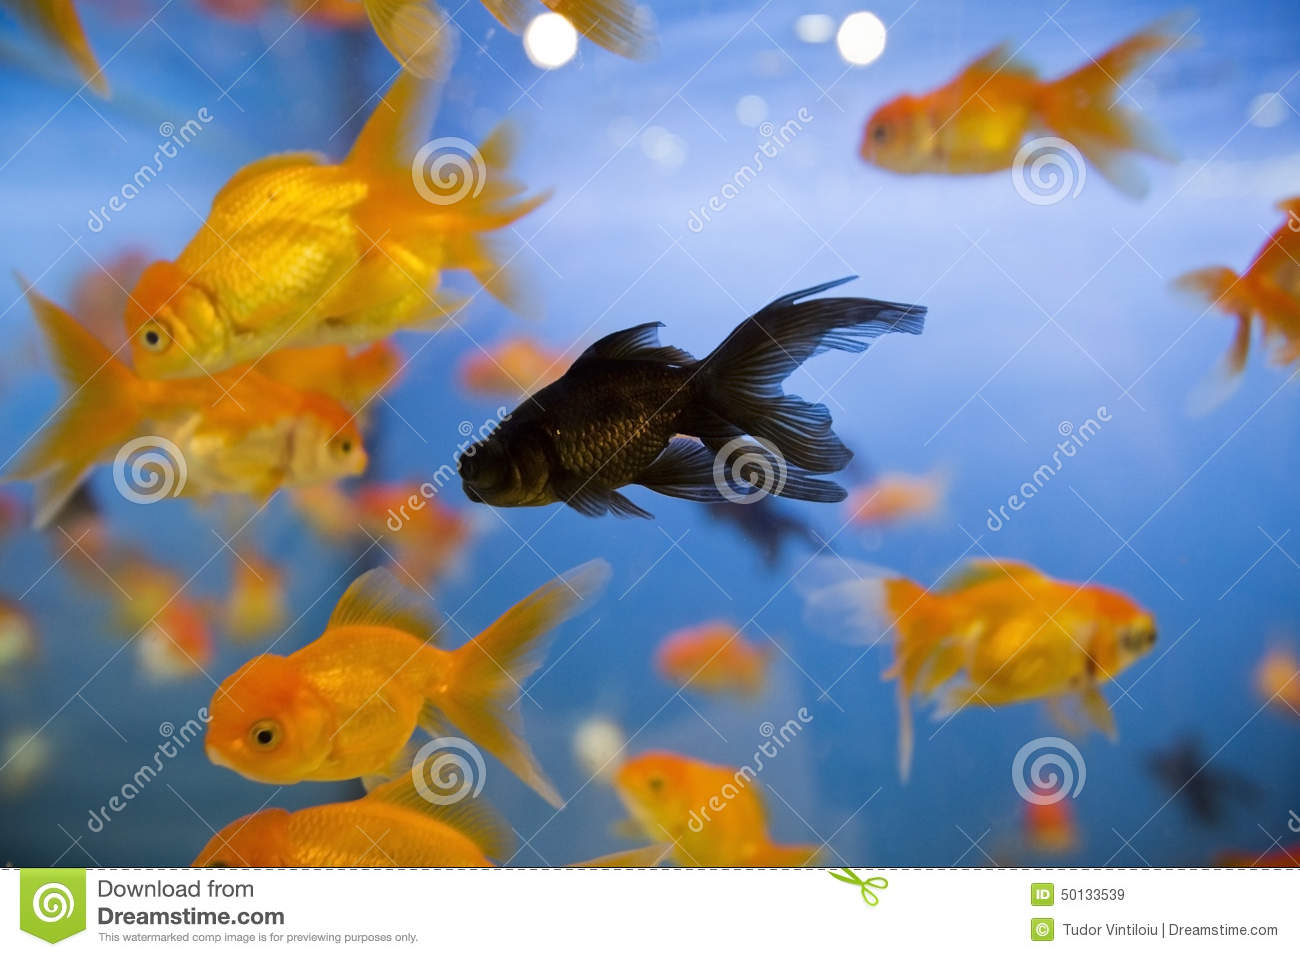 A Black Goldfish Swims In Large Fish Tank Full Of Regular